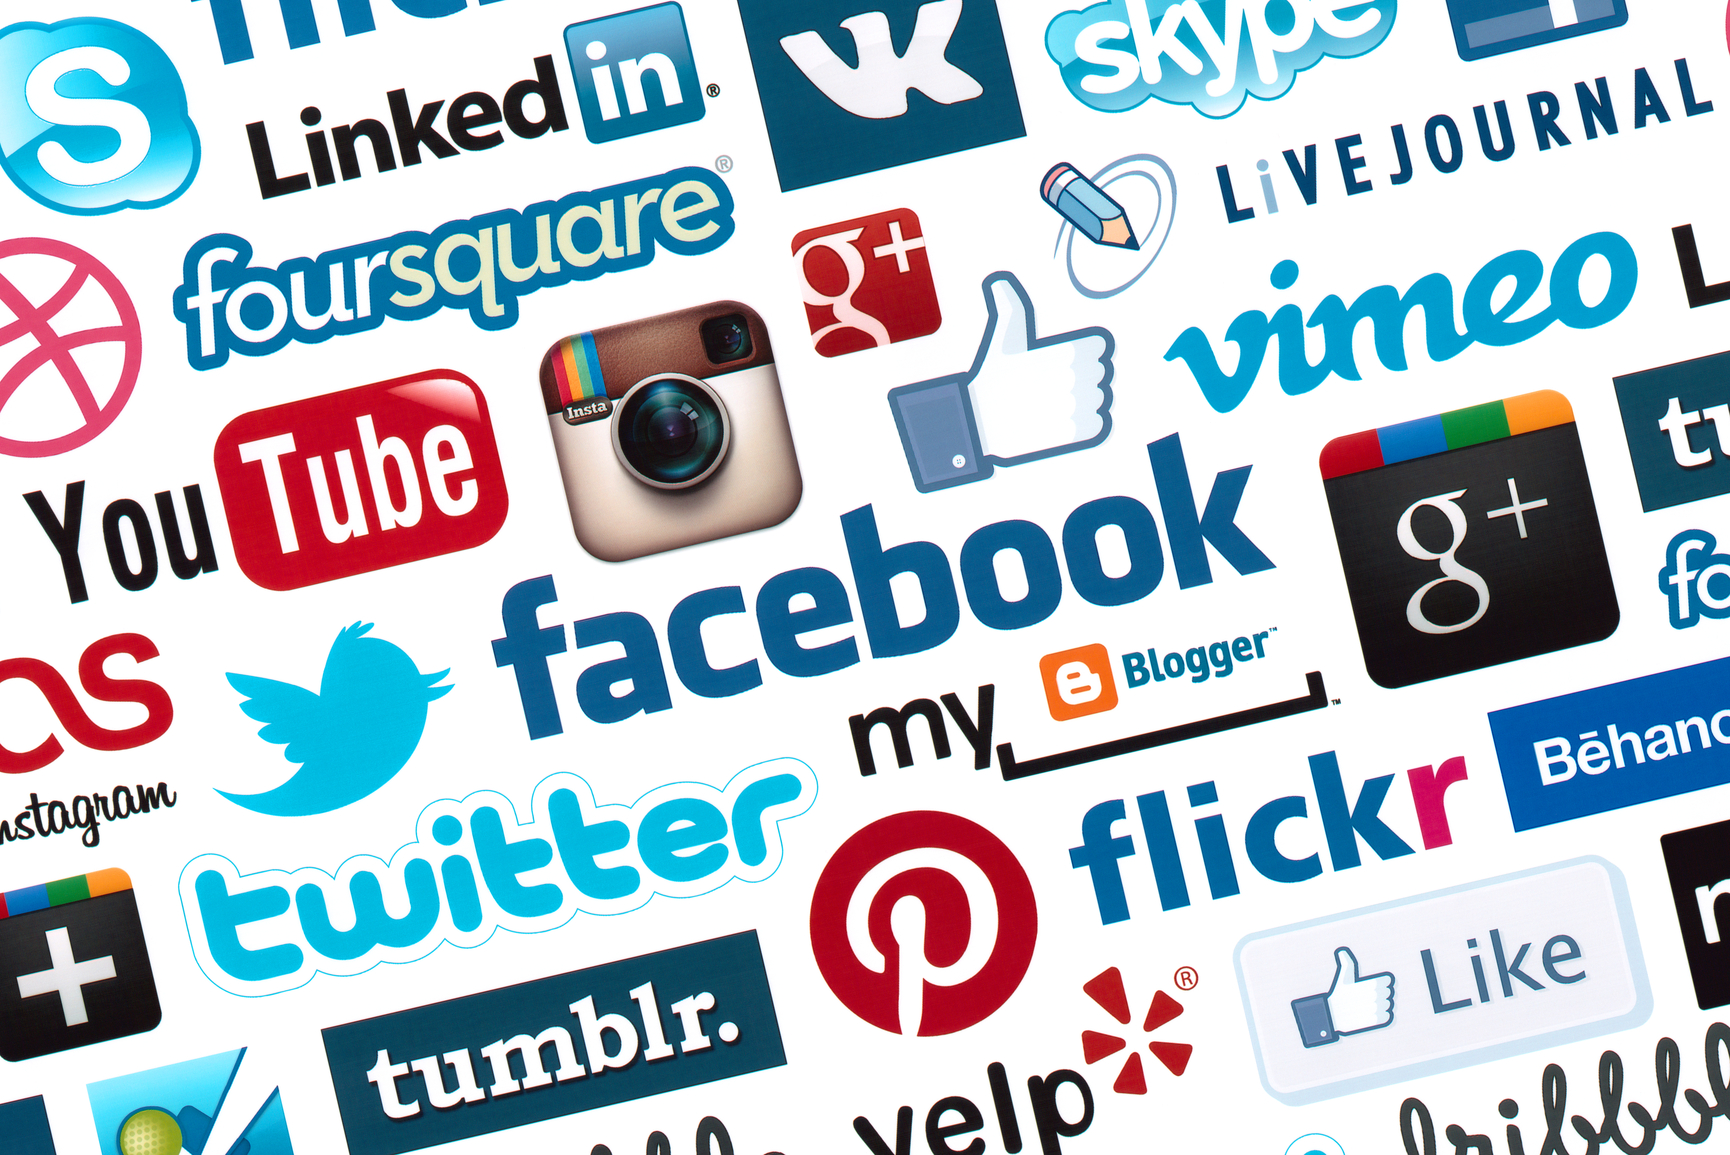 TOP SOCIAL MEDIA TRENDS FOR 2020 AND BEYOND